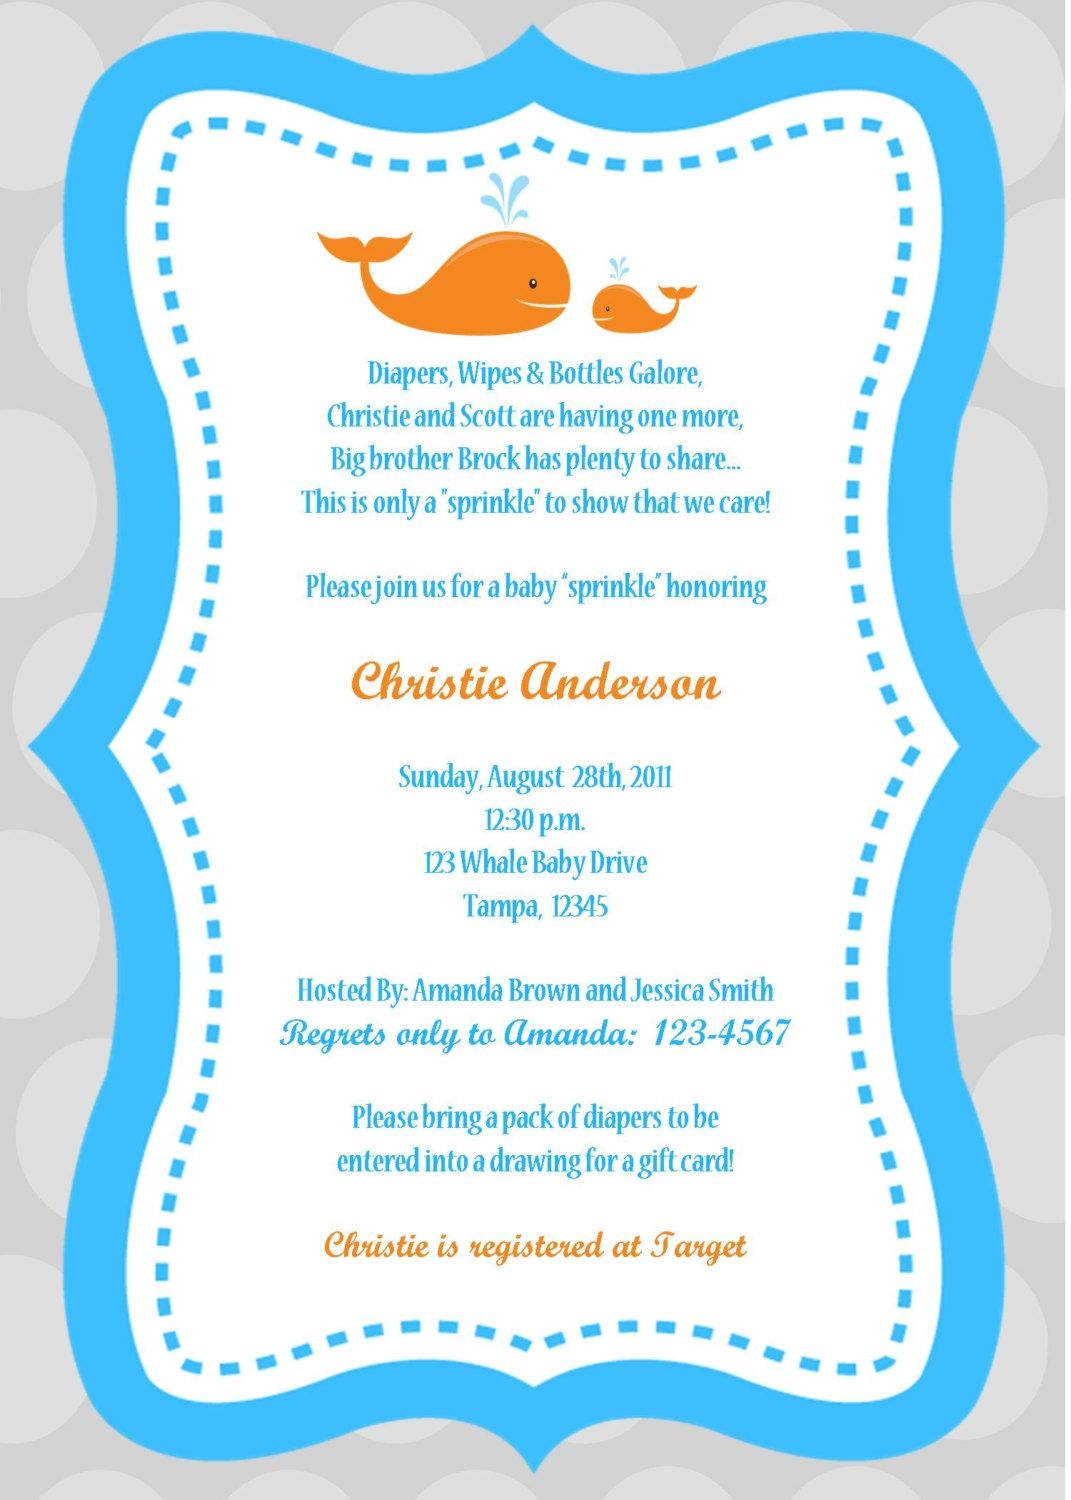 Baby shower invitation wording for male and female httpatwebry baby shower invitation wording for male and female filmwisefo Choice Image